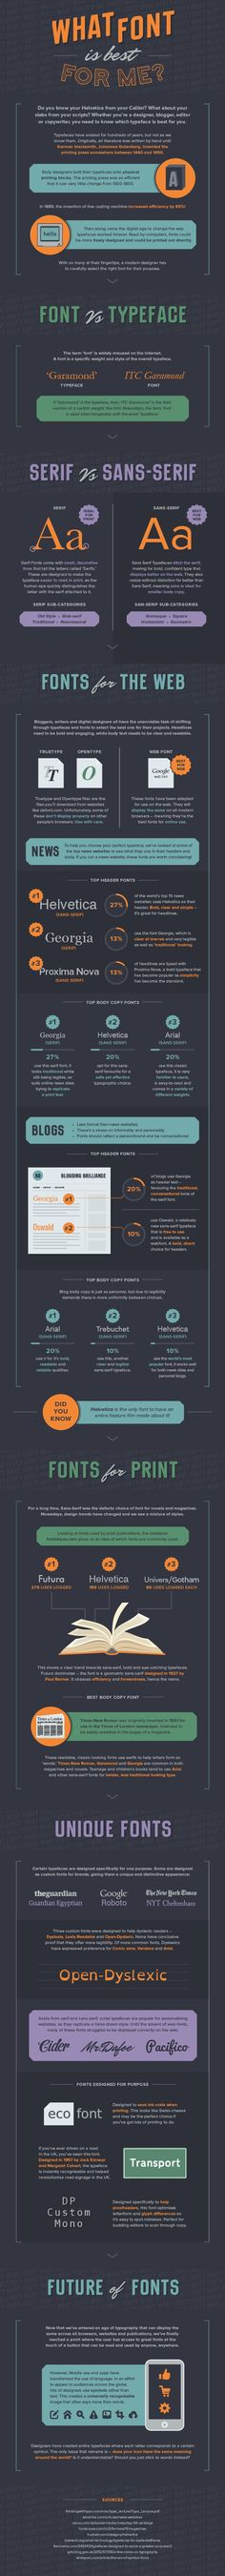 A Detailed Guide to Choosing the Right Fonts [Infographic], via @HubSpot